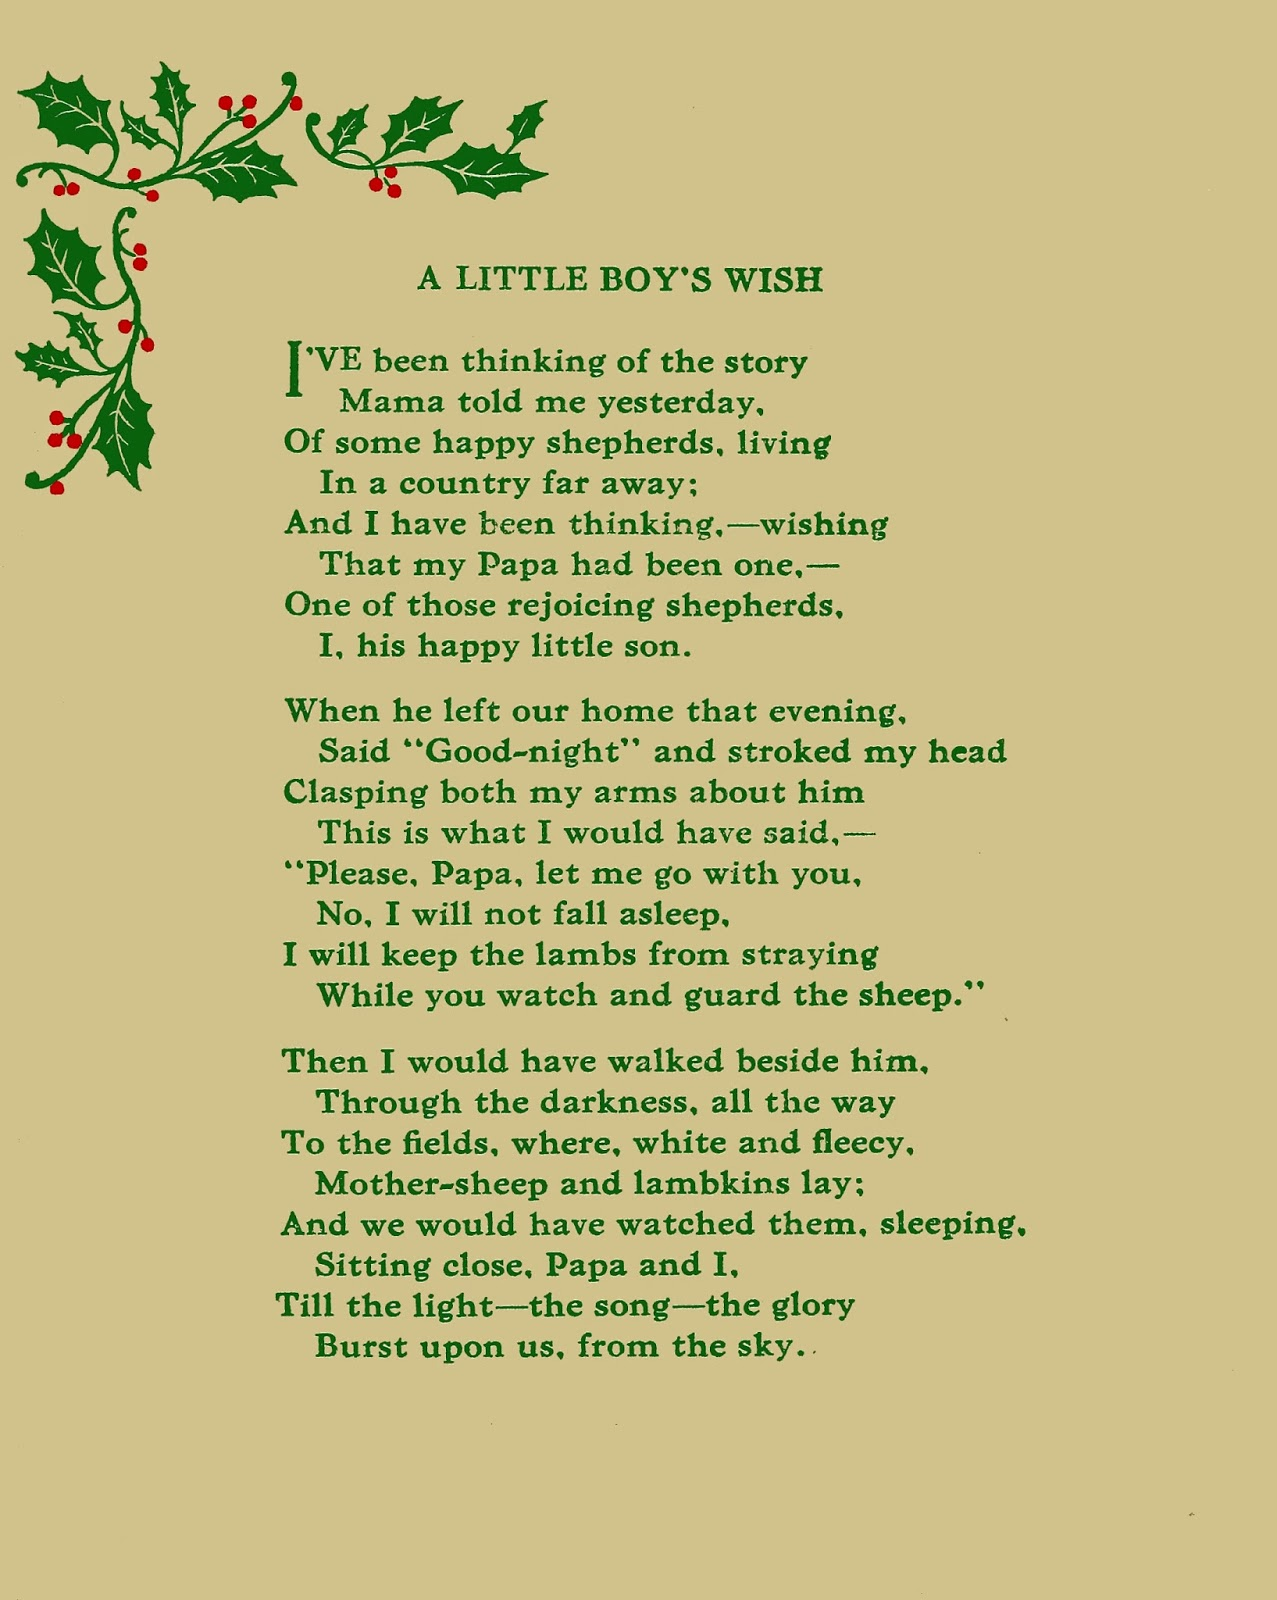 image about Christmas in Heaven Poem Printable referred to as An additional Terrific Xmas poem